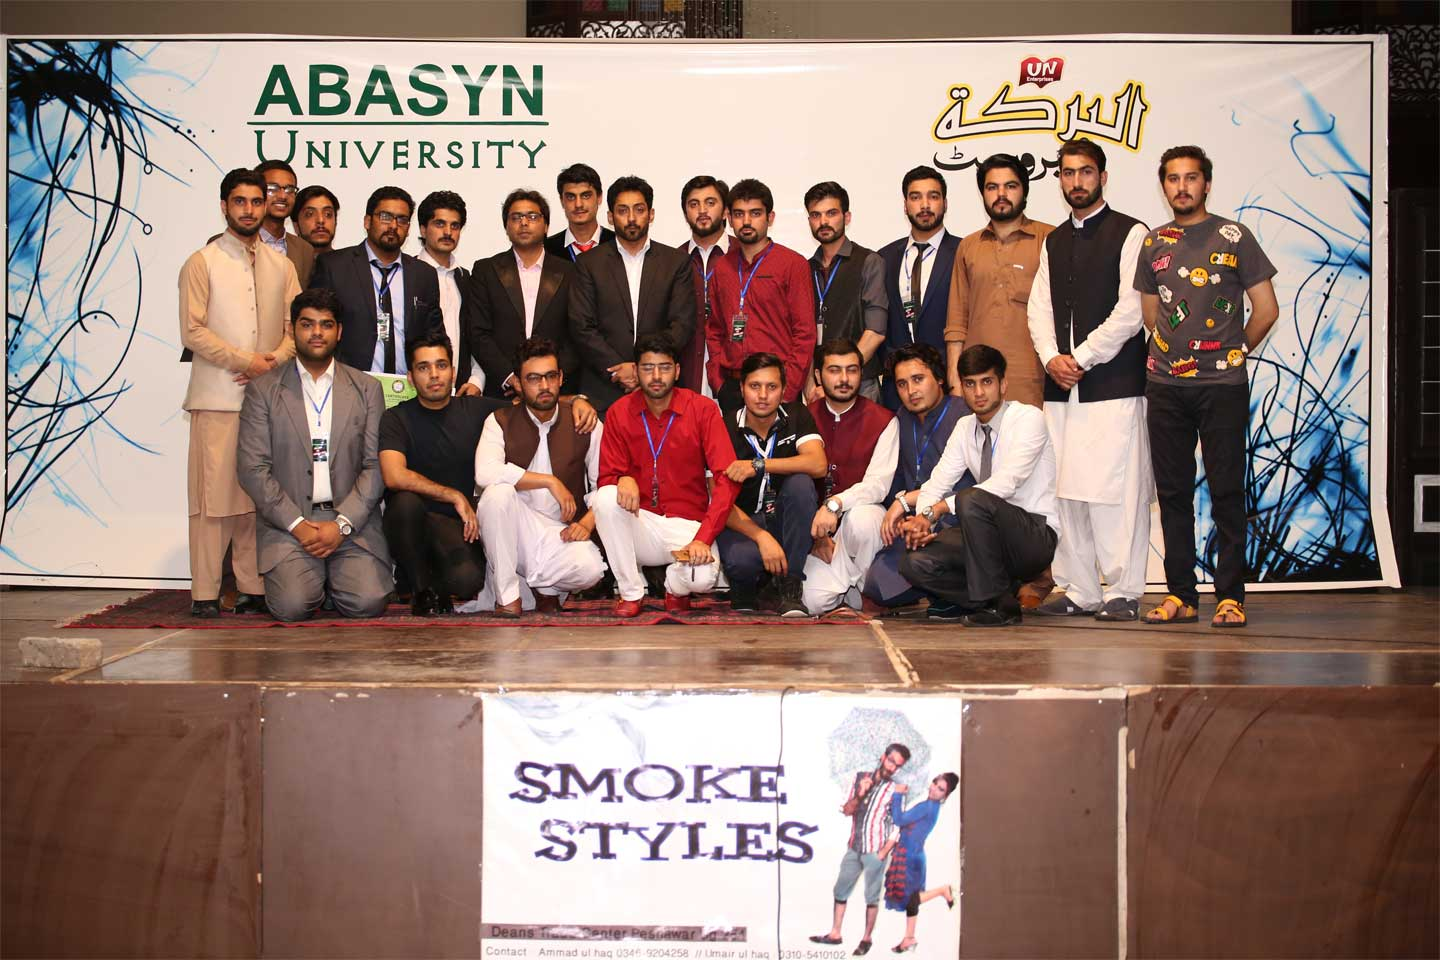 Abasyn university farewell party 2017